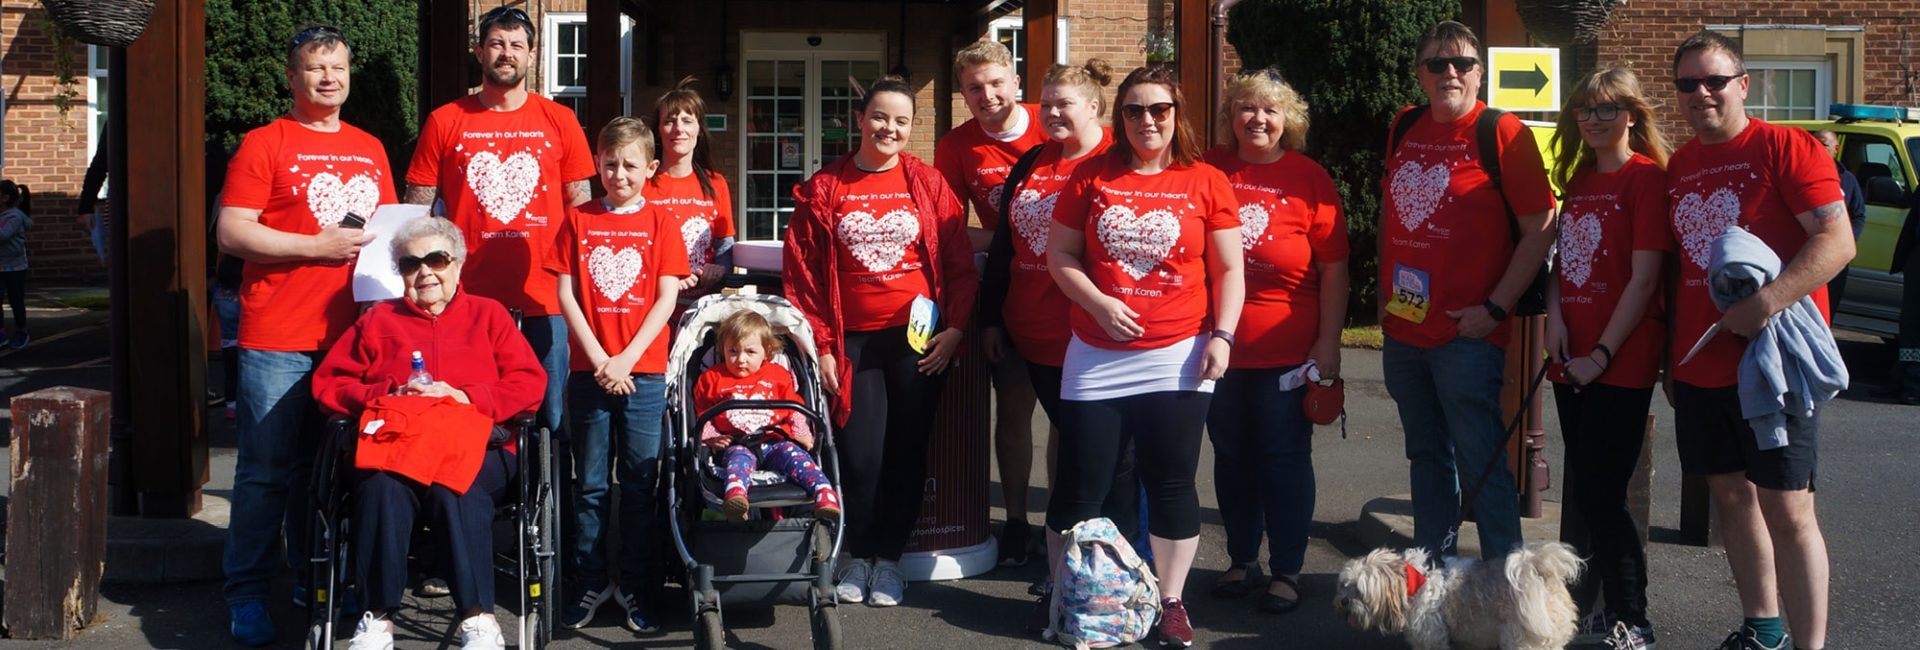 The Myton Hospices Walk For Myton Channel Image Warwick Coventry Rugby Leamington Spa